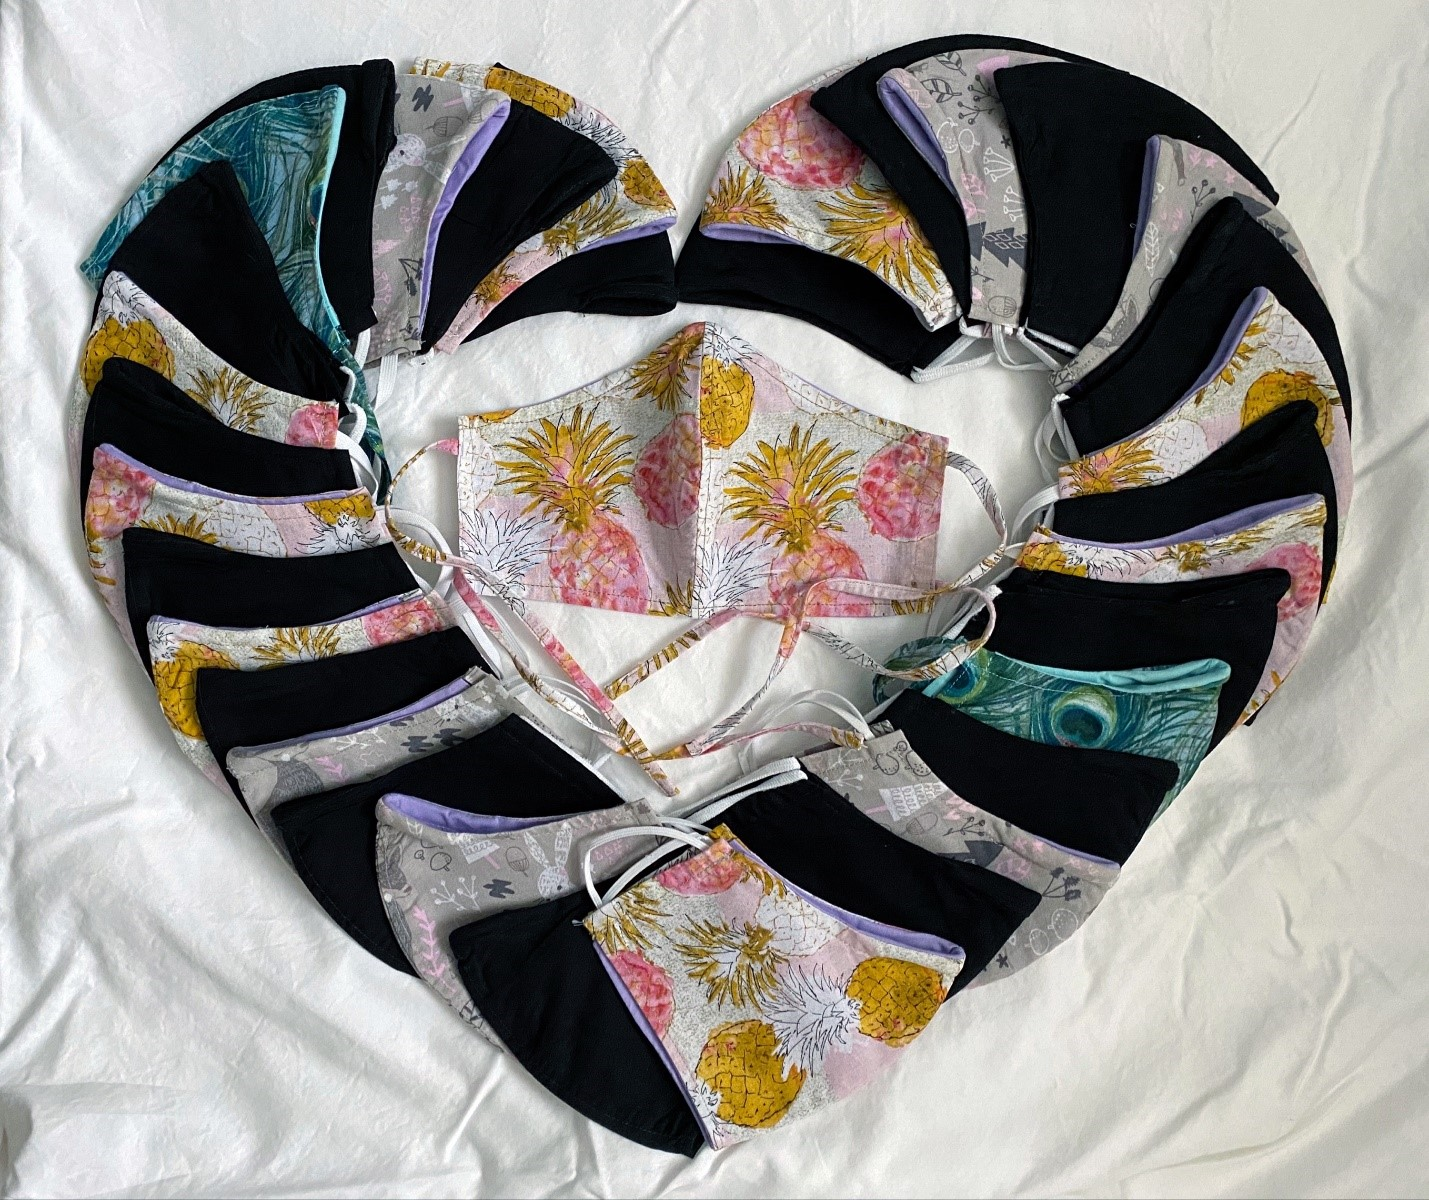 cloth masks laid out in a heart shape